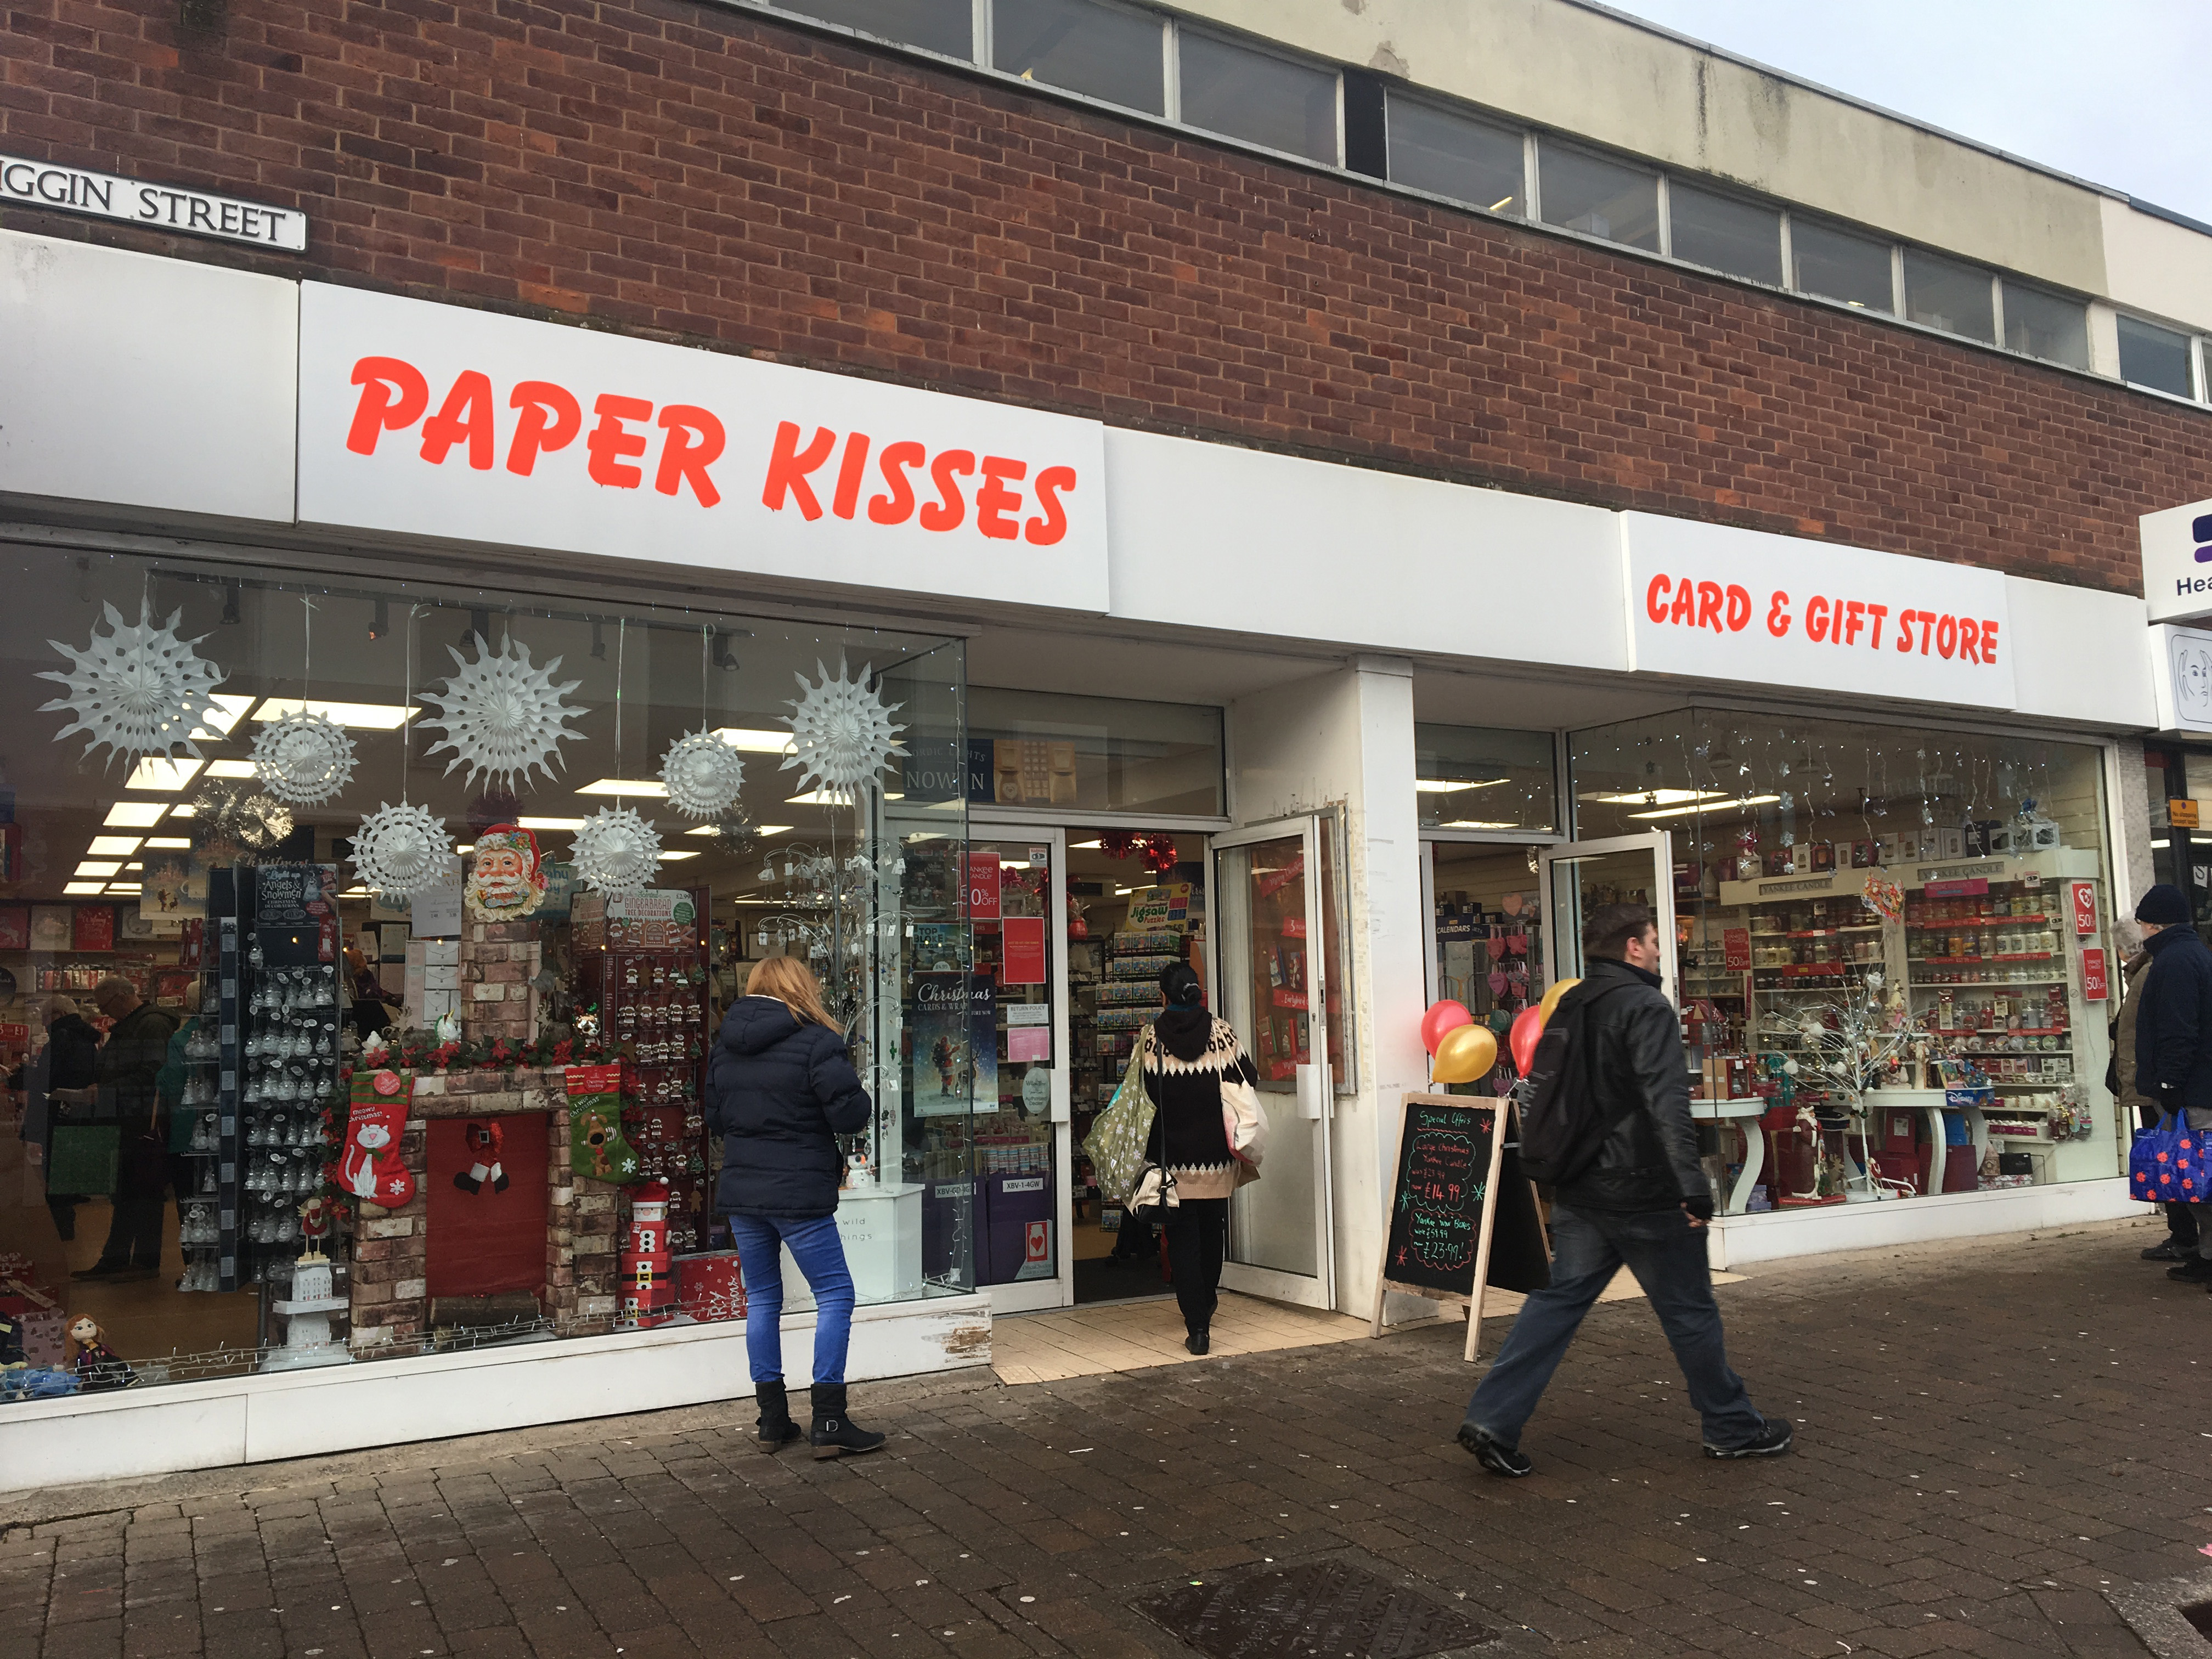 Above: Cardzone's Paper Kisses' store in Loughborough.